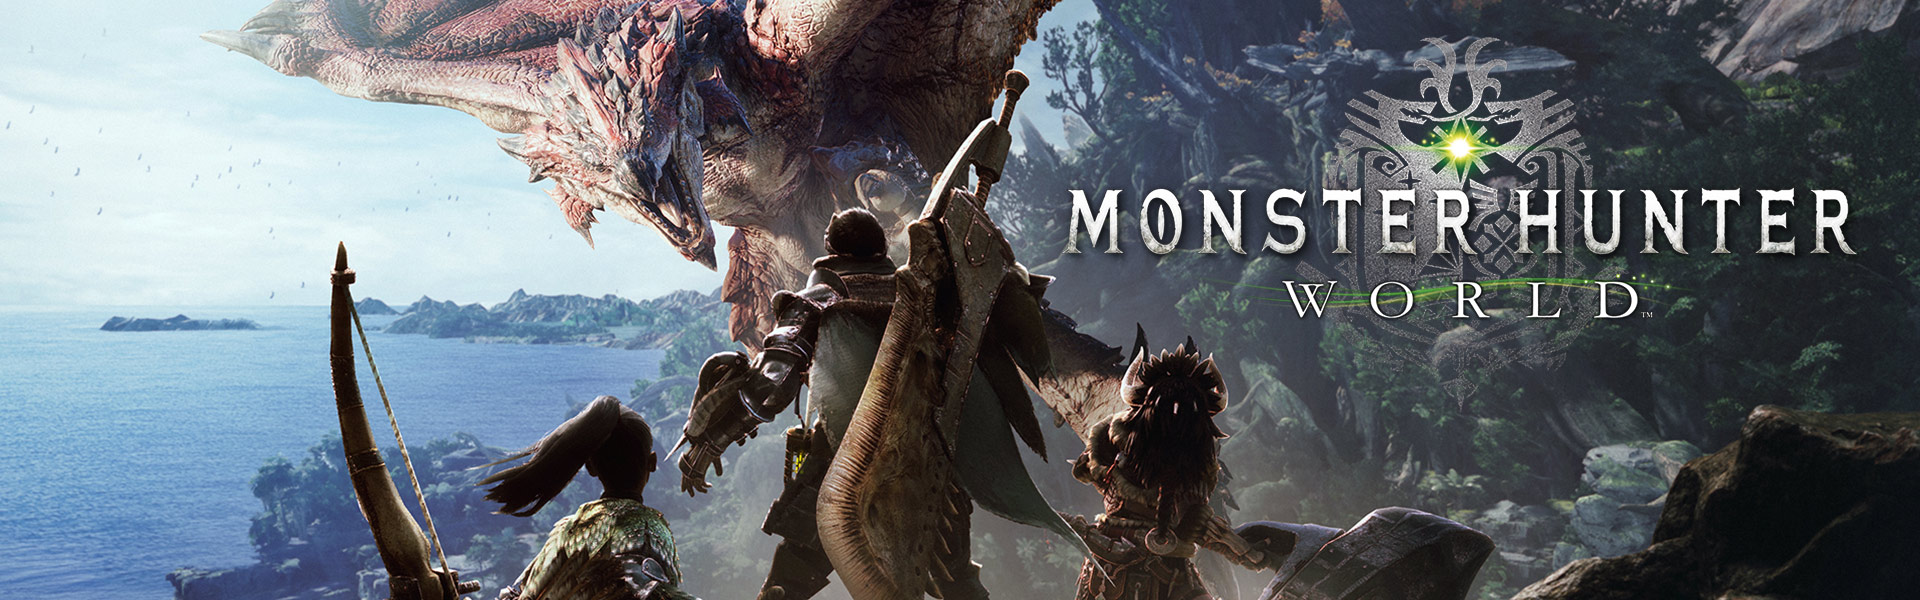 Monster Hunter World, As personagens enfrentam uma fera voadora prontas para o combate